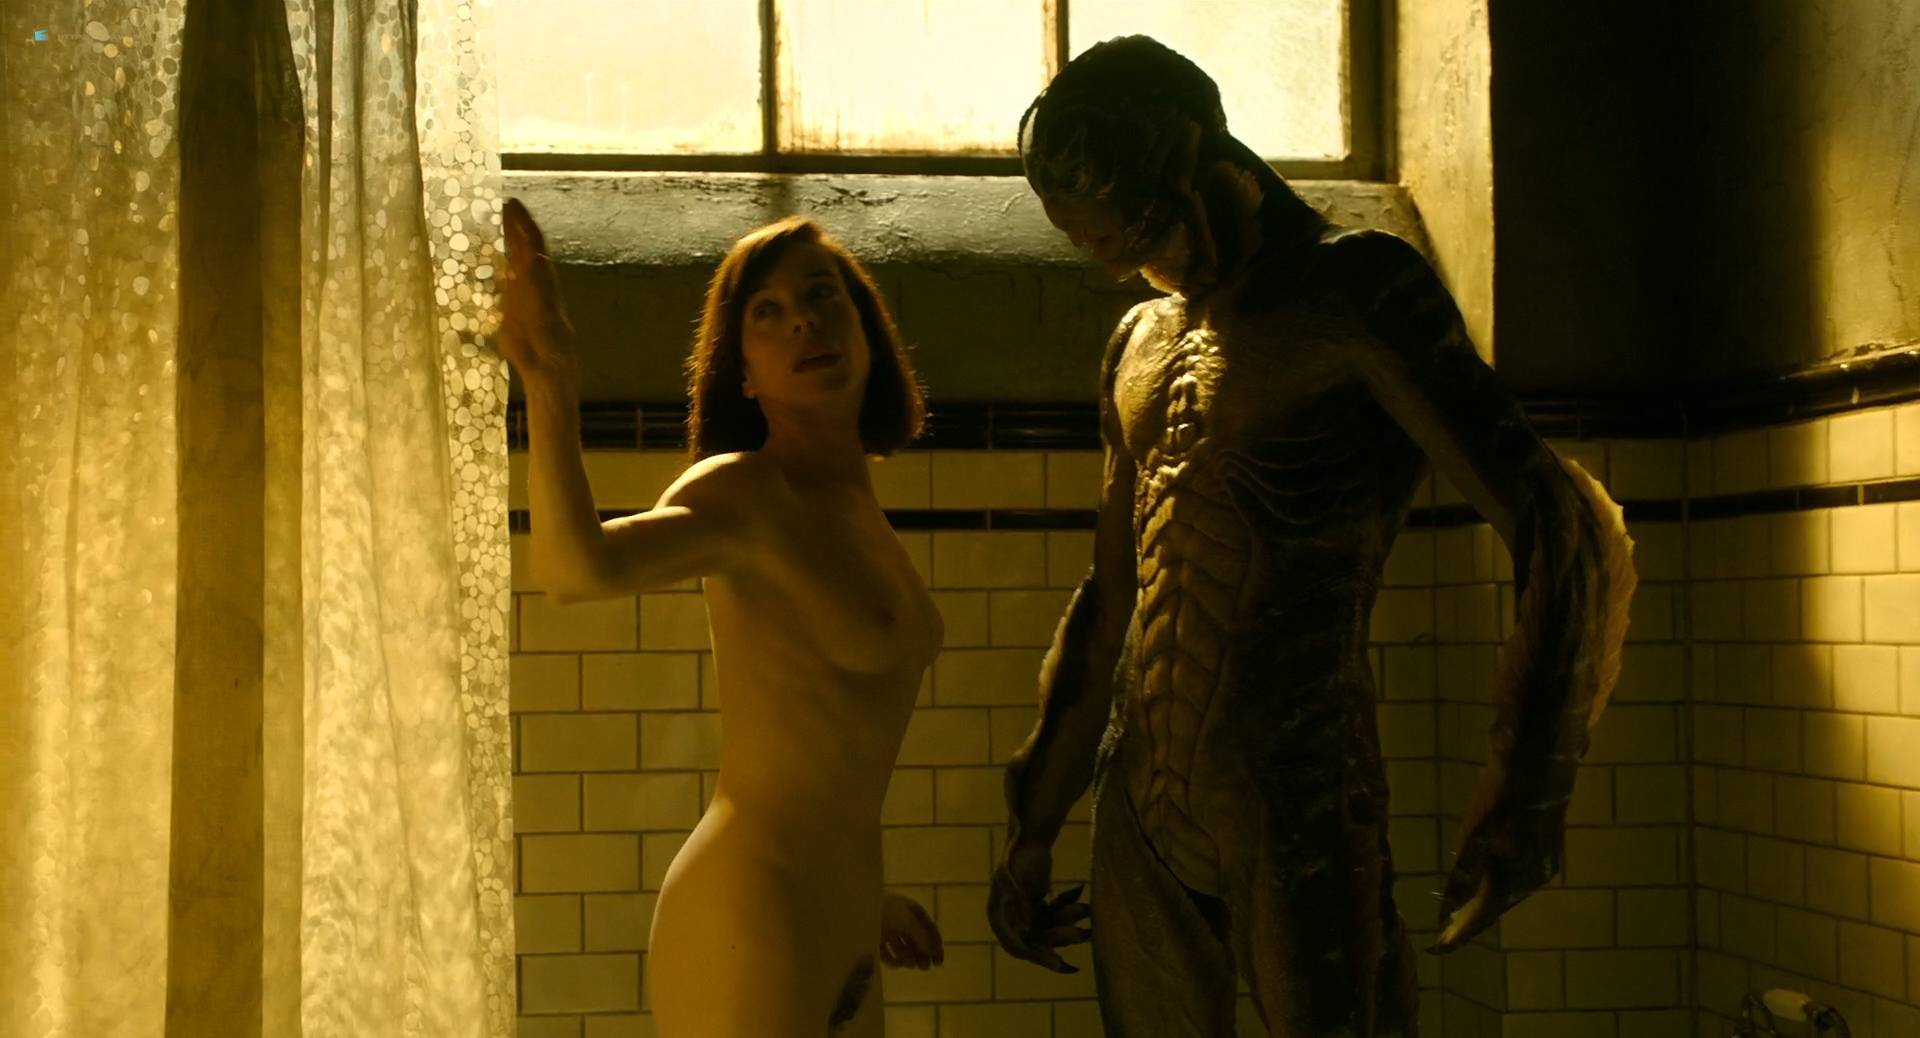 Sally-Hawkins-nude-bush-butt-Lauren-Lee-Smith-nude-boob-and-sex-The-Shape-of-Water-2017-HD-1080p-015.jpg